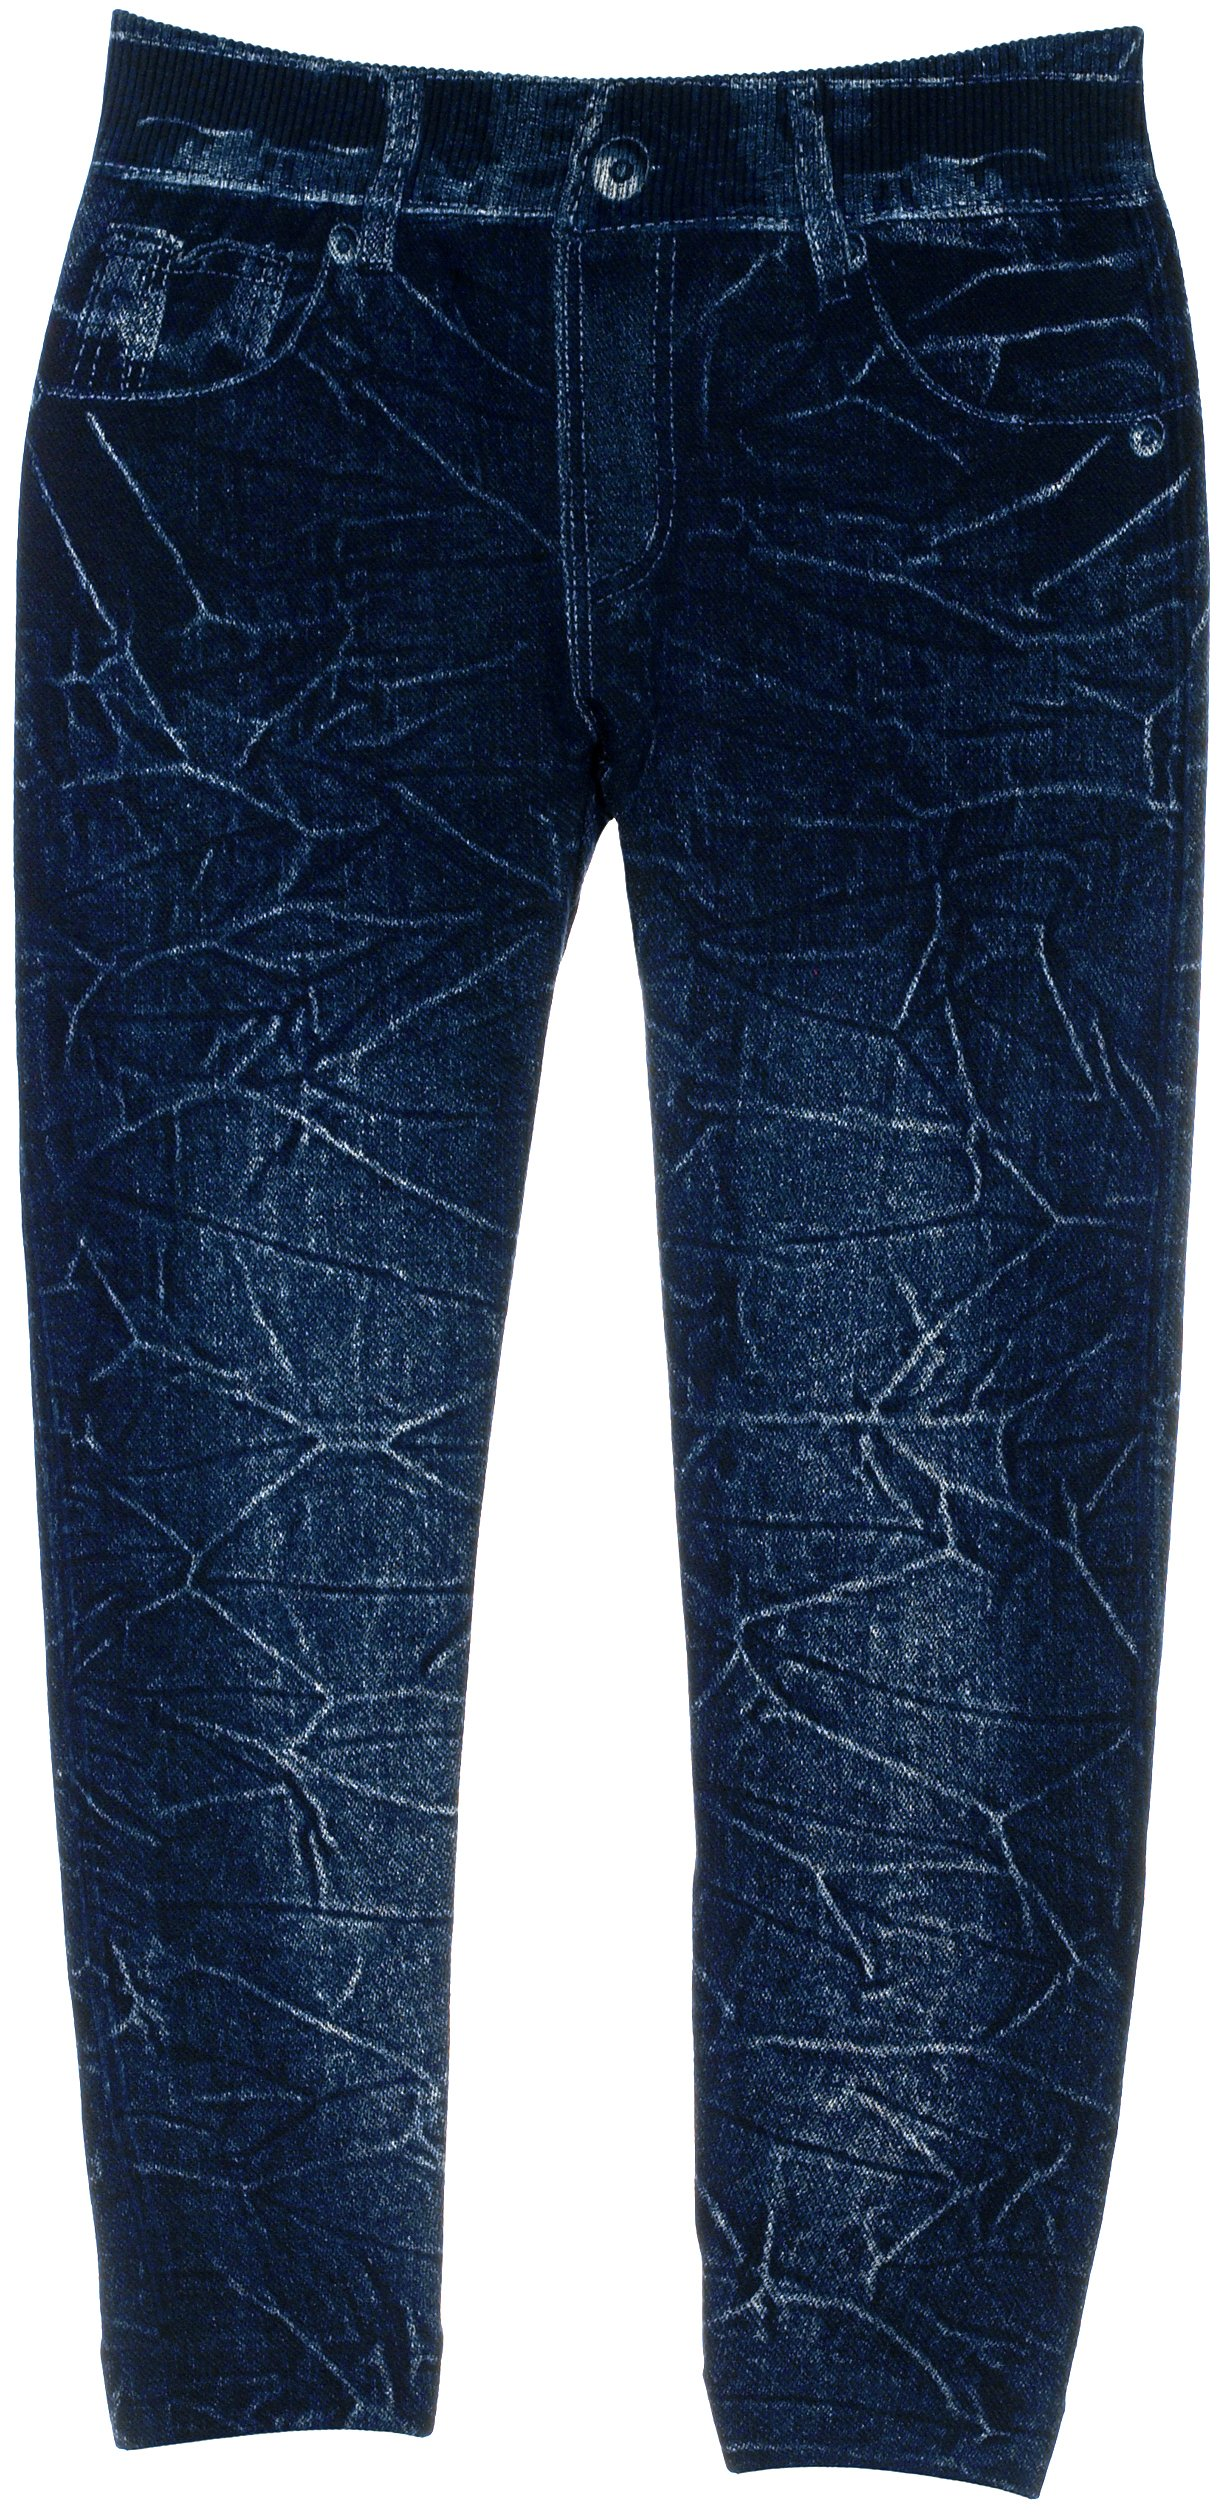 Crush Toddler Girls Jeggings with Realistic Look and Feel in Black & Dark Blue (2T-4T, Dark Blue)